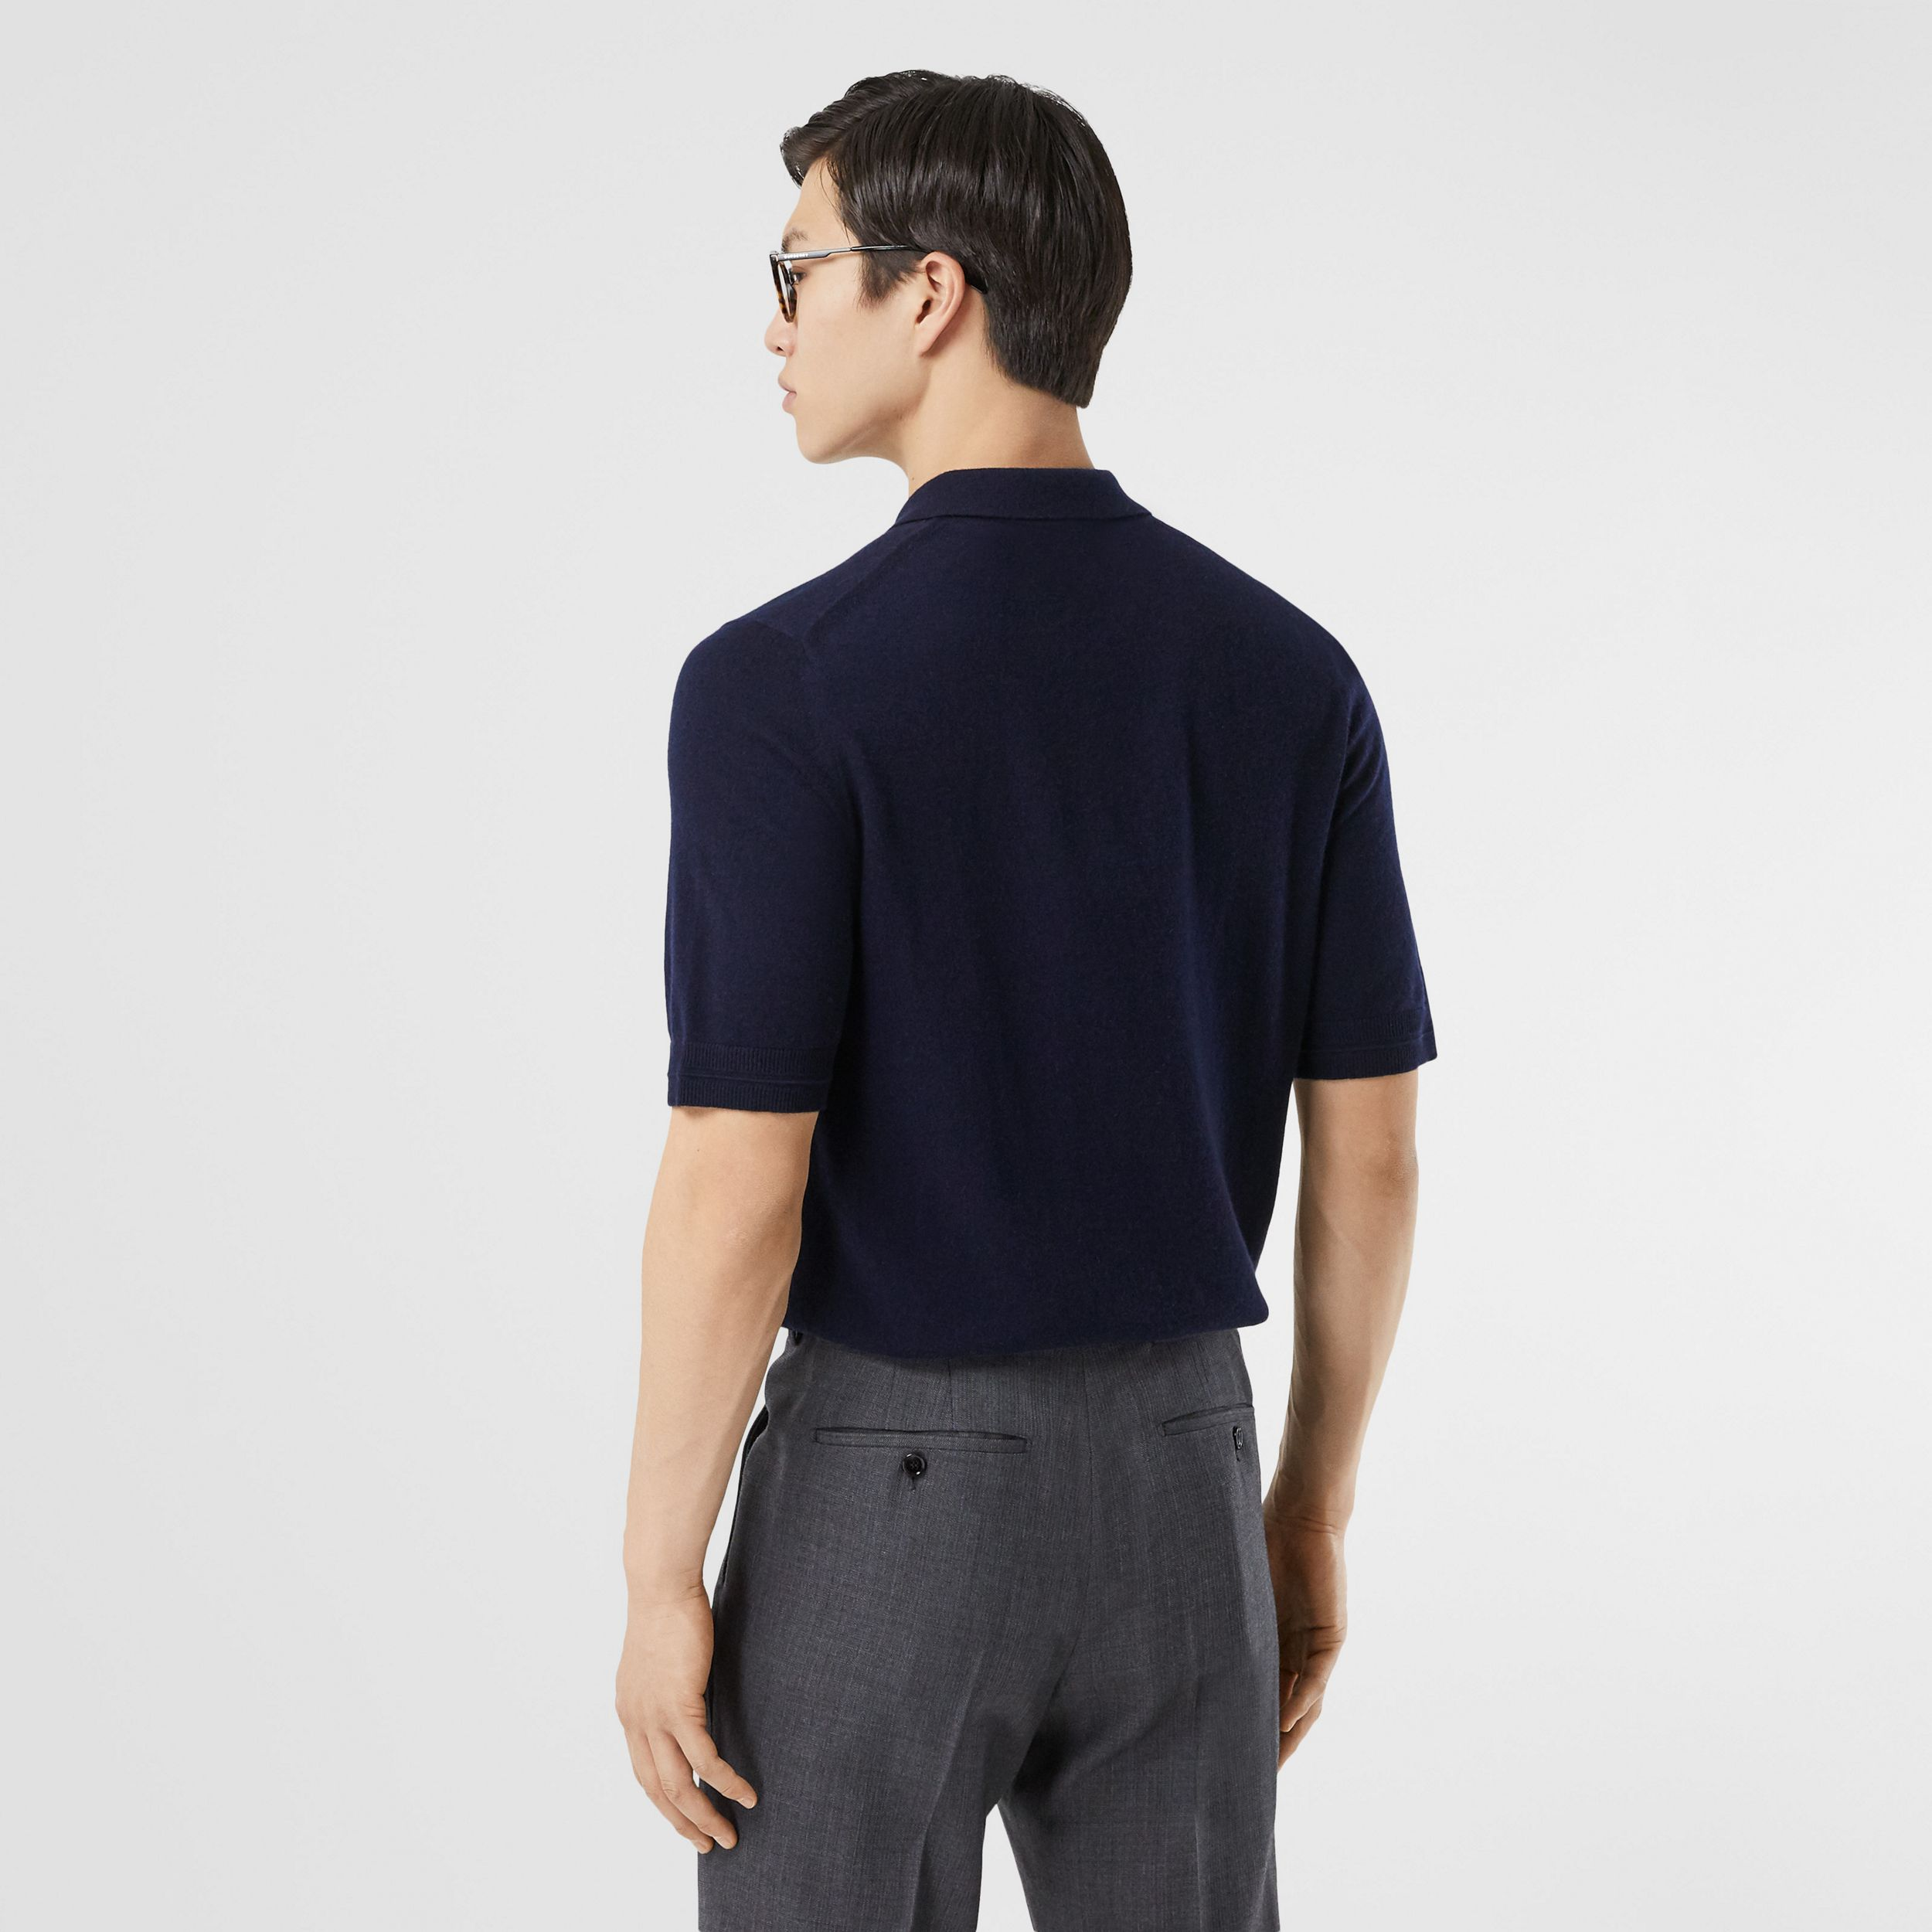 Monogram Motif Cashmere Polo Shirt in Navy - Men | Burberry - 3